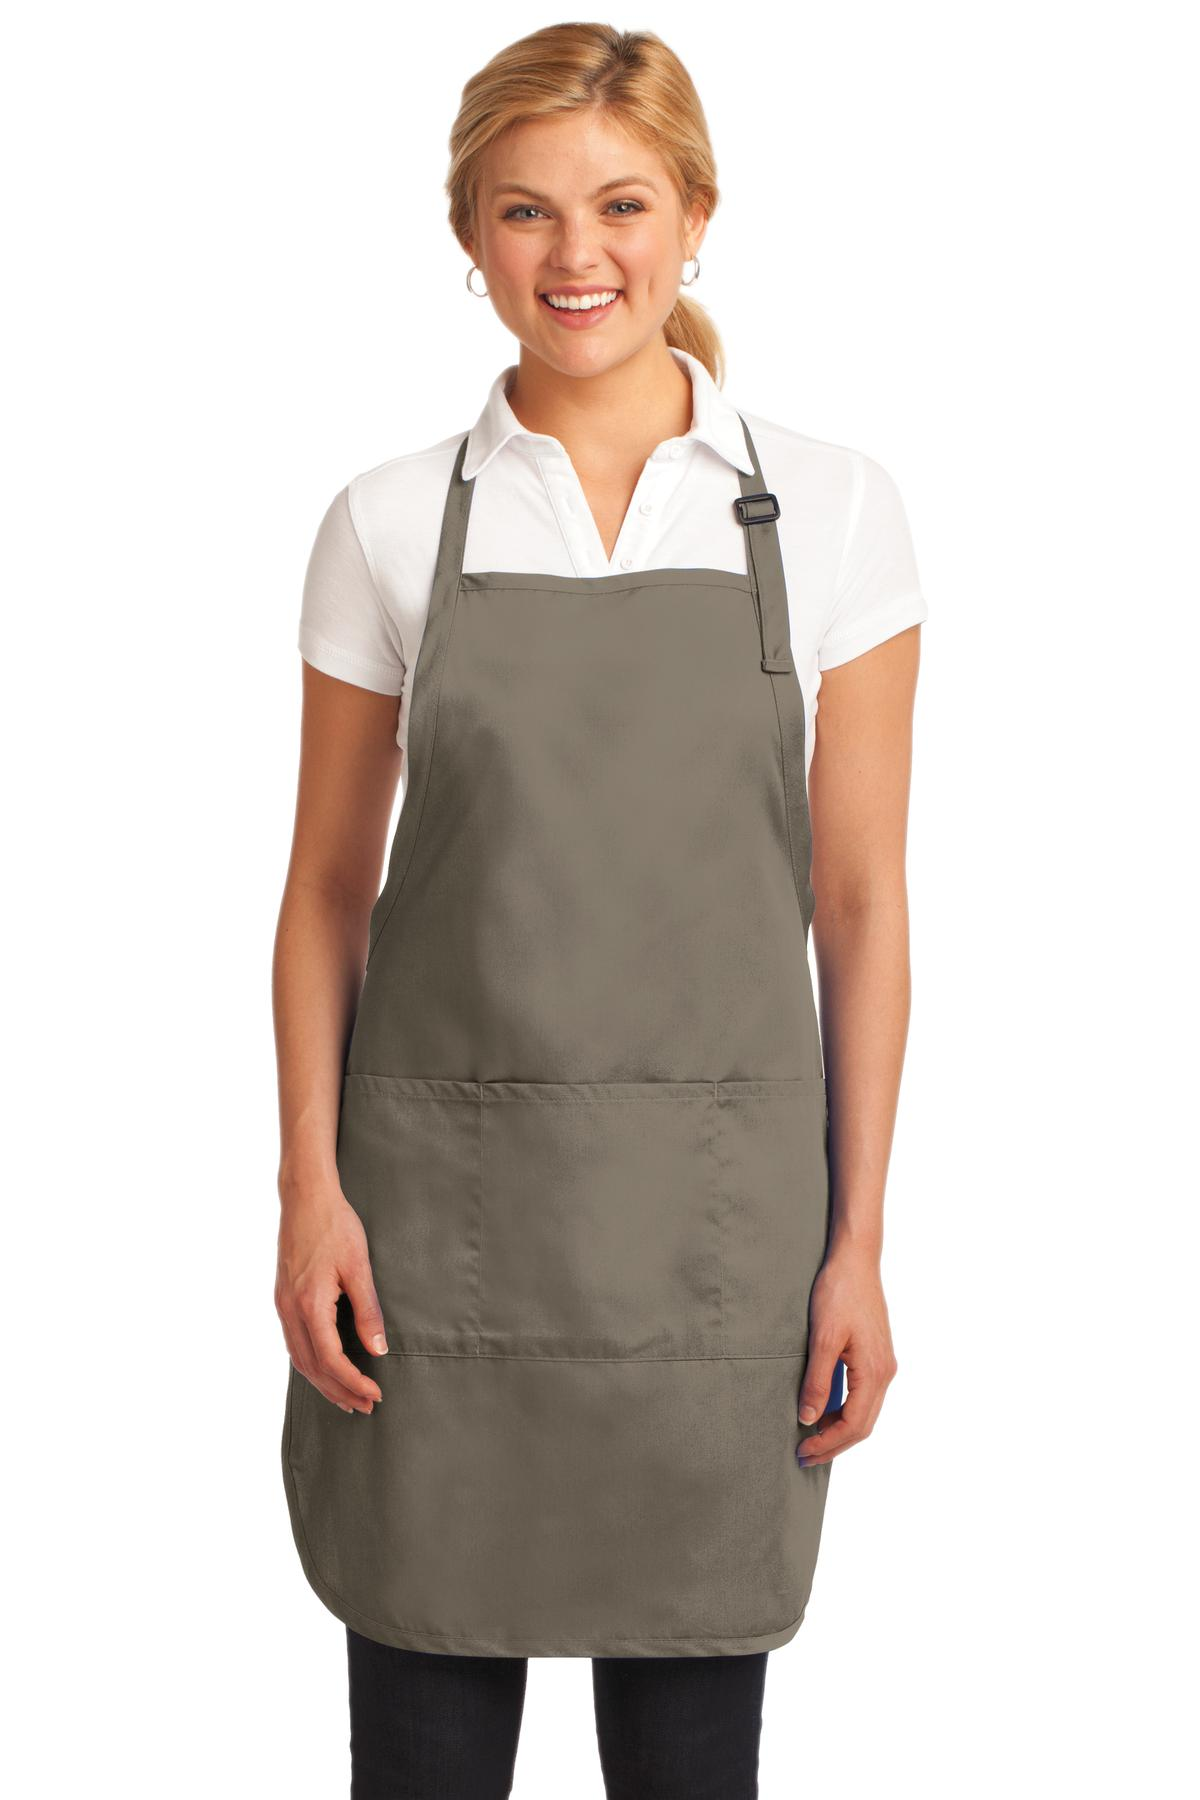 Accessories-Aprons-9